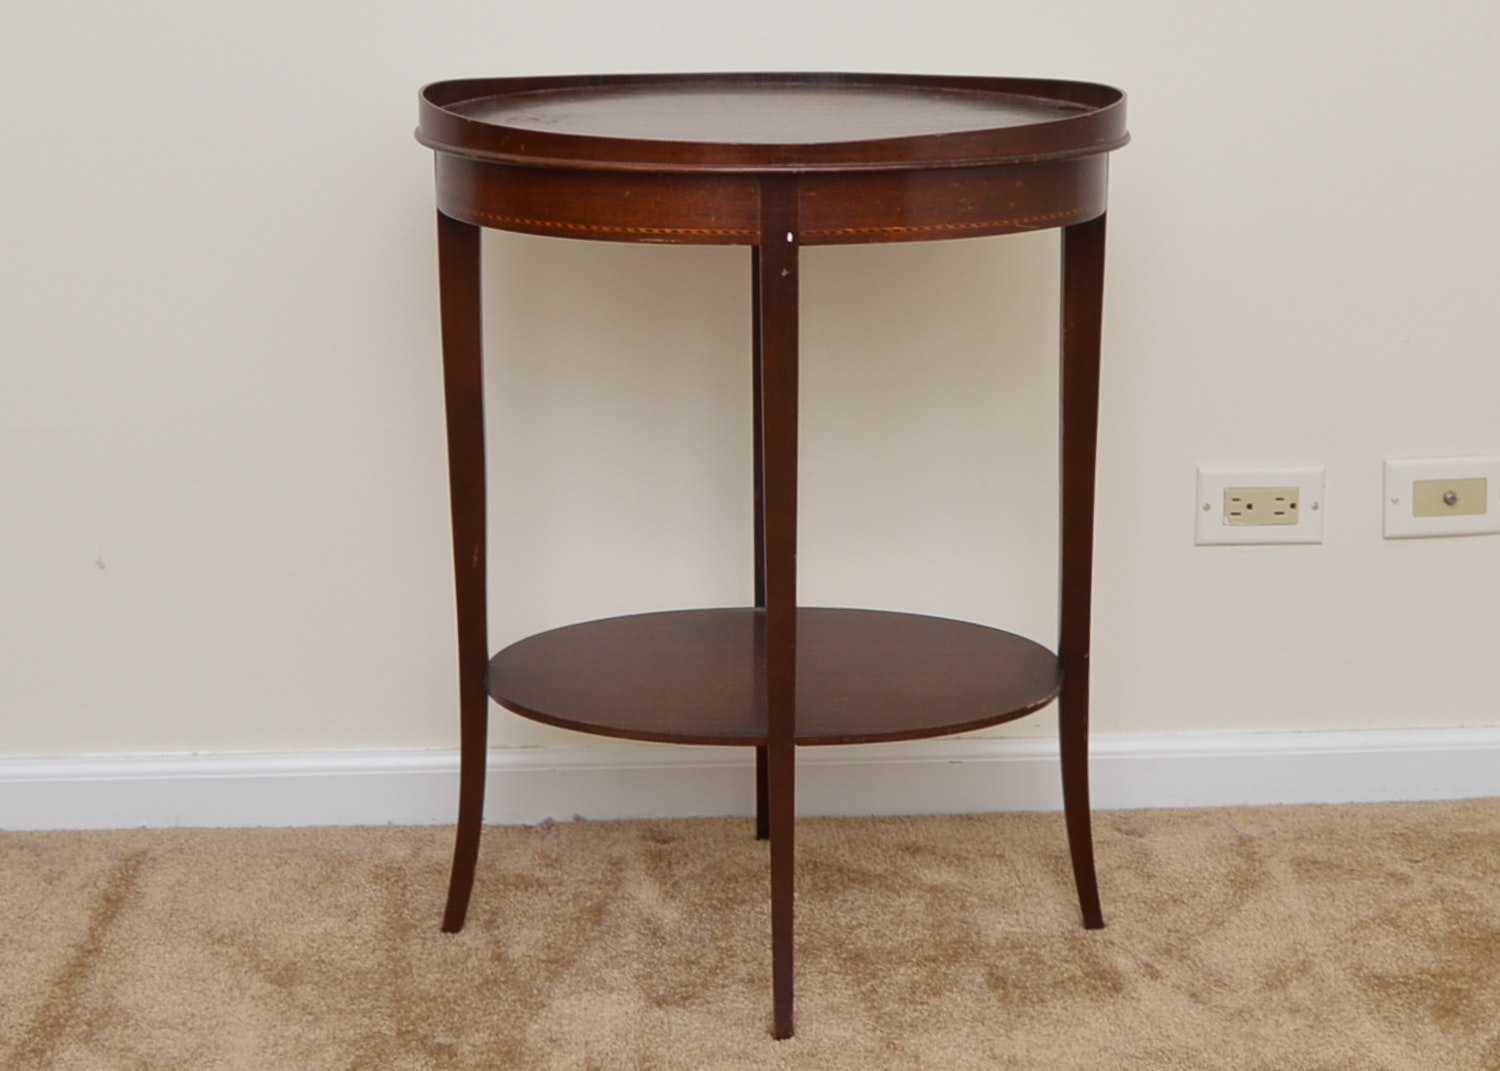 Marvelous Vintage Federal Style Mahogany Accent Table By Mersman ...